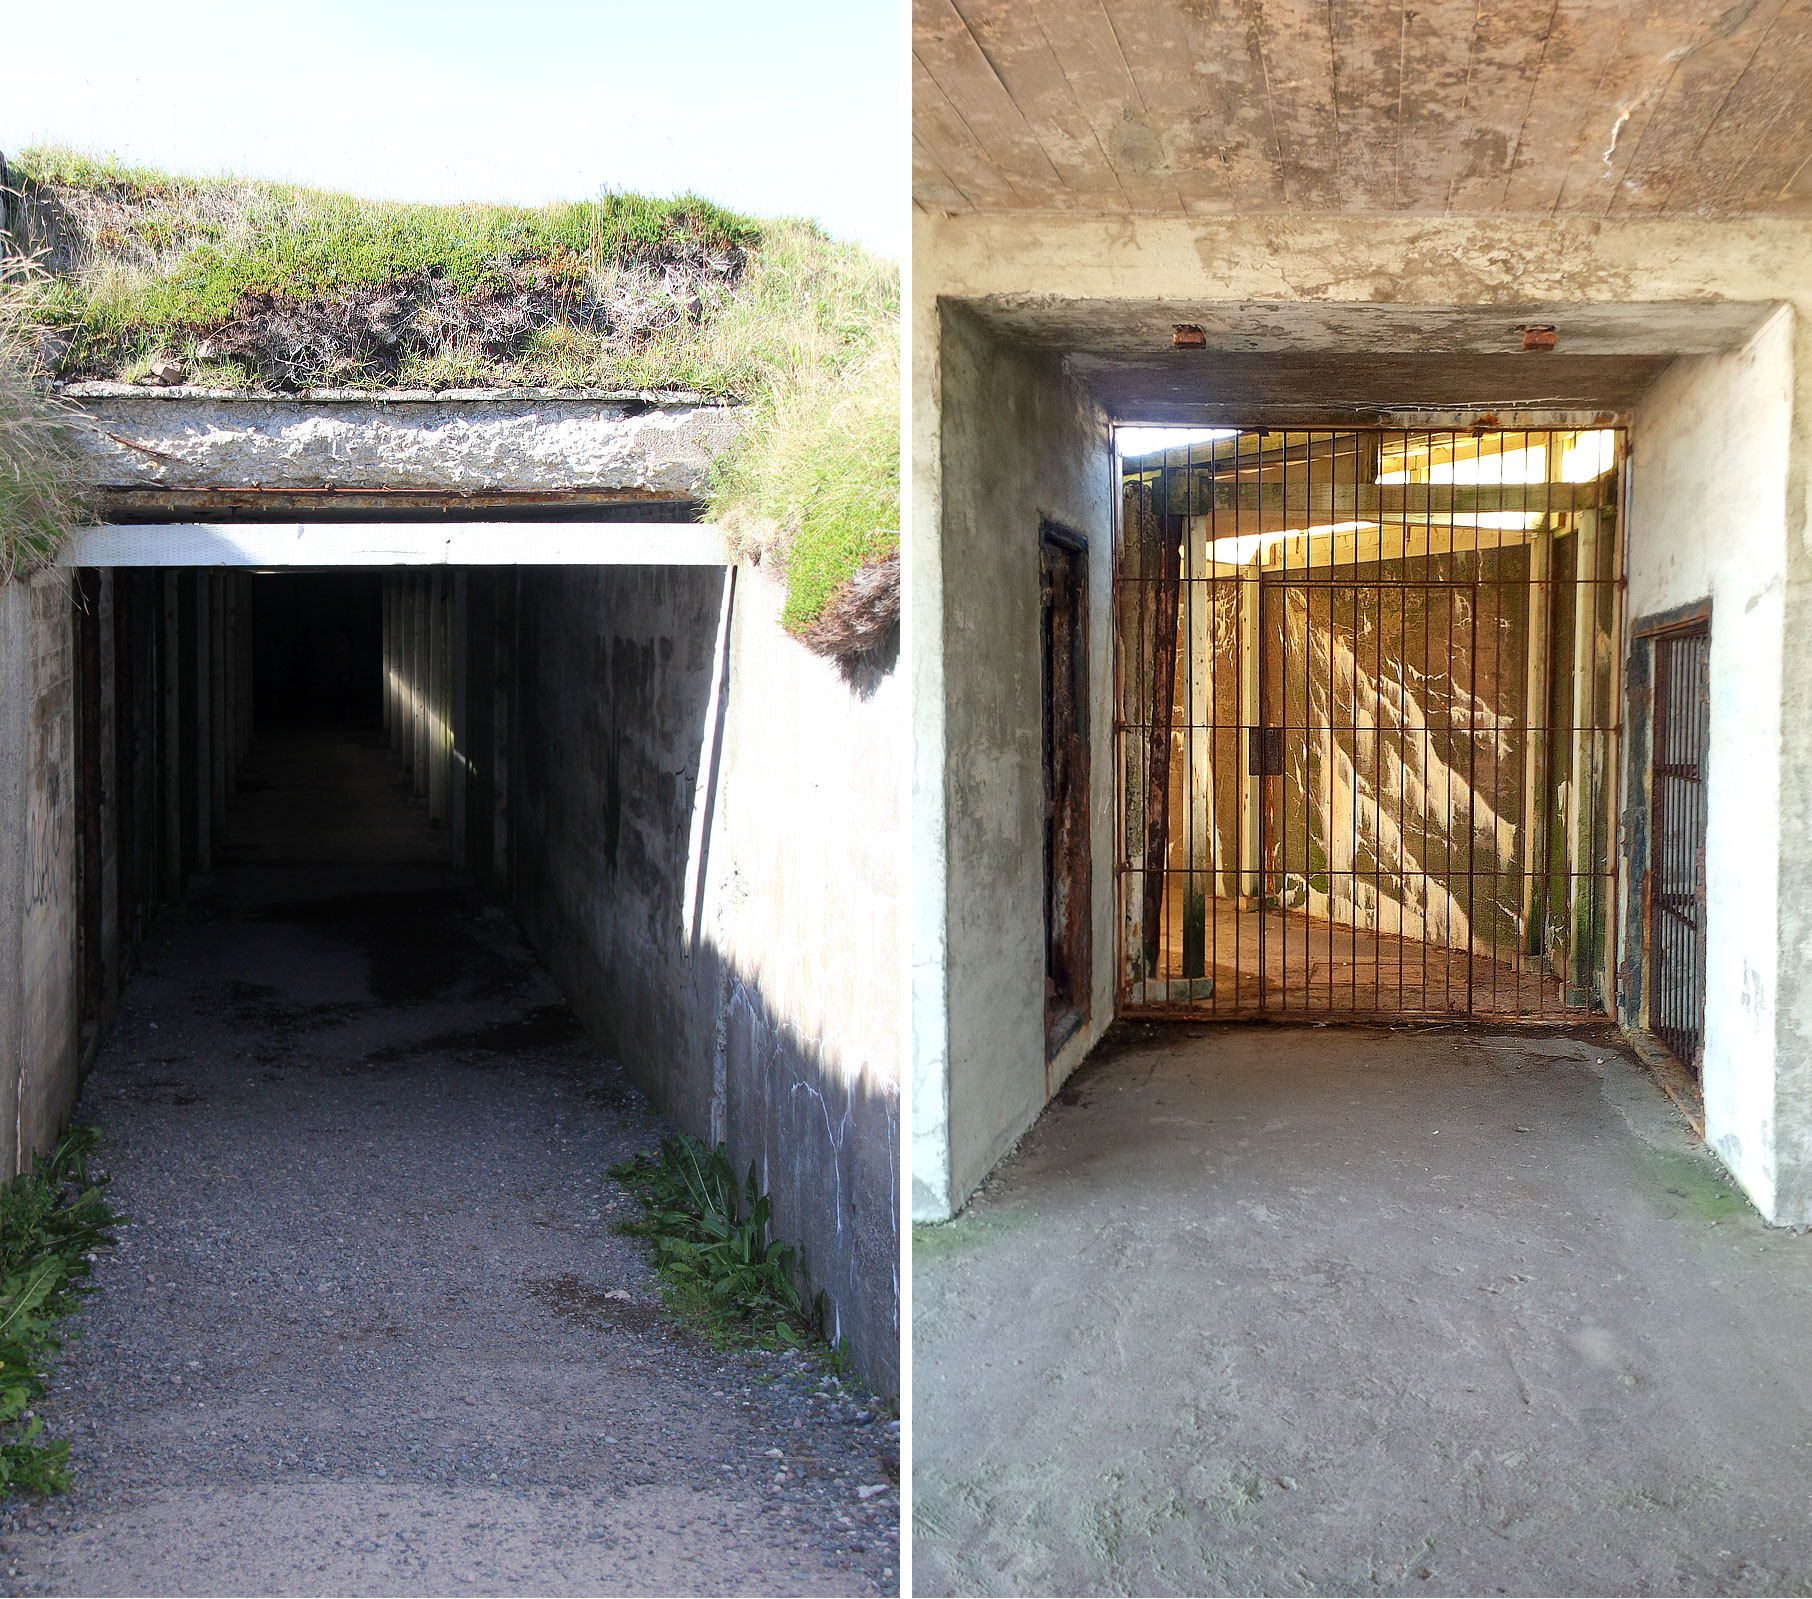 Going-into-bunker